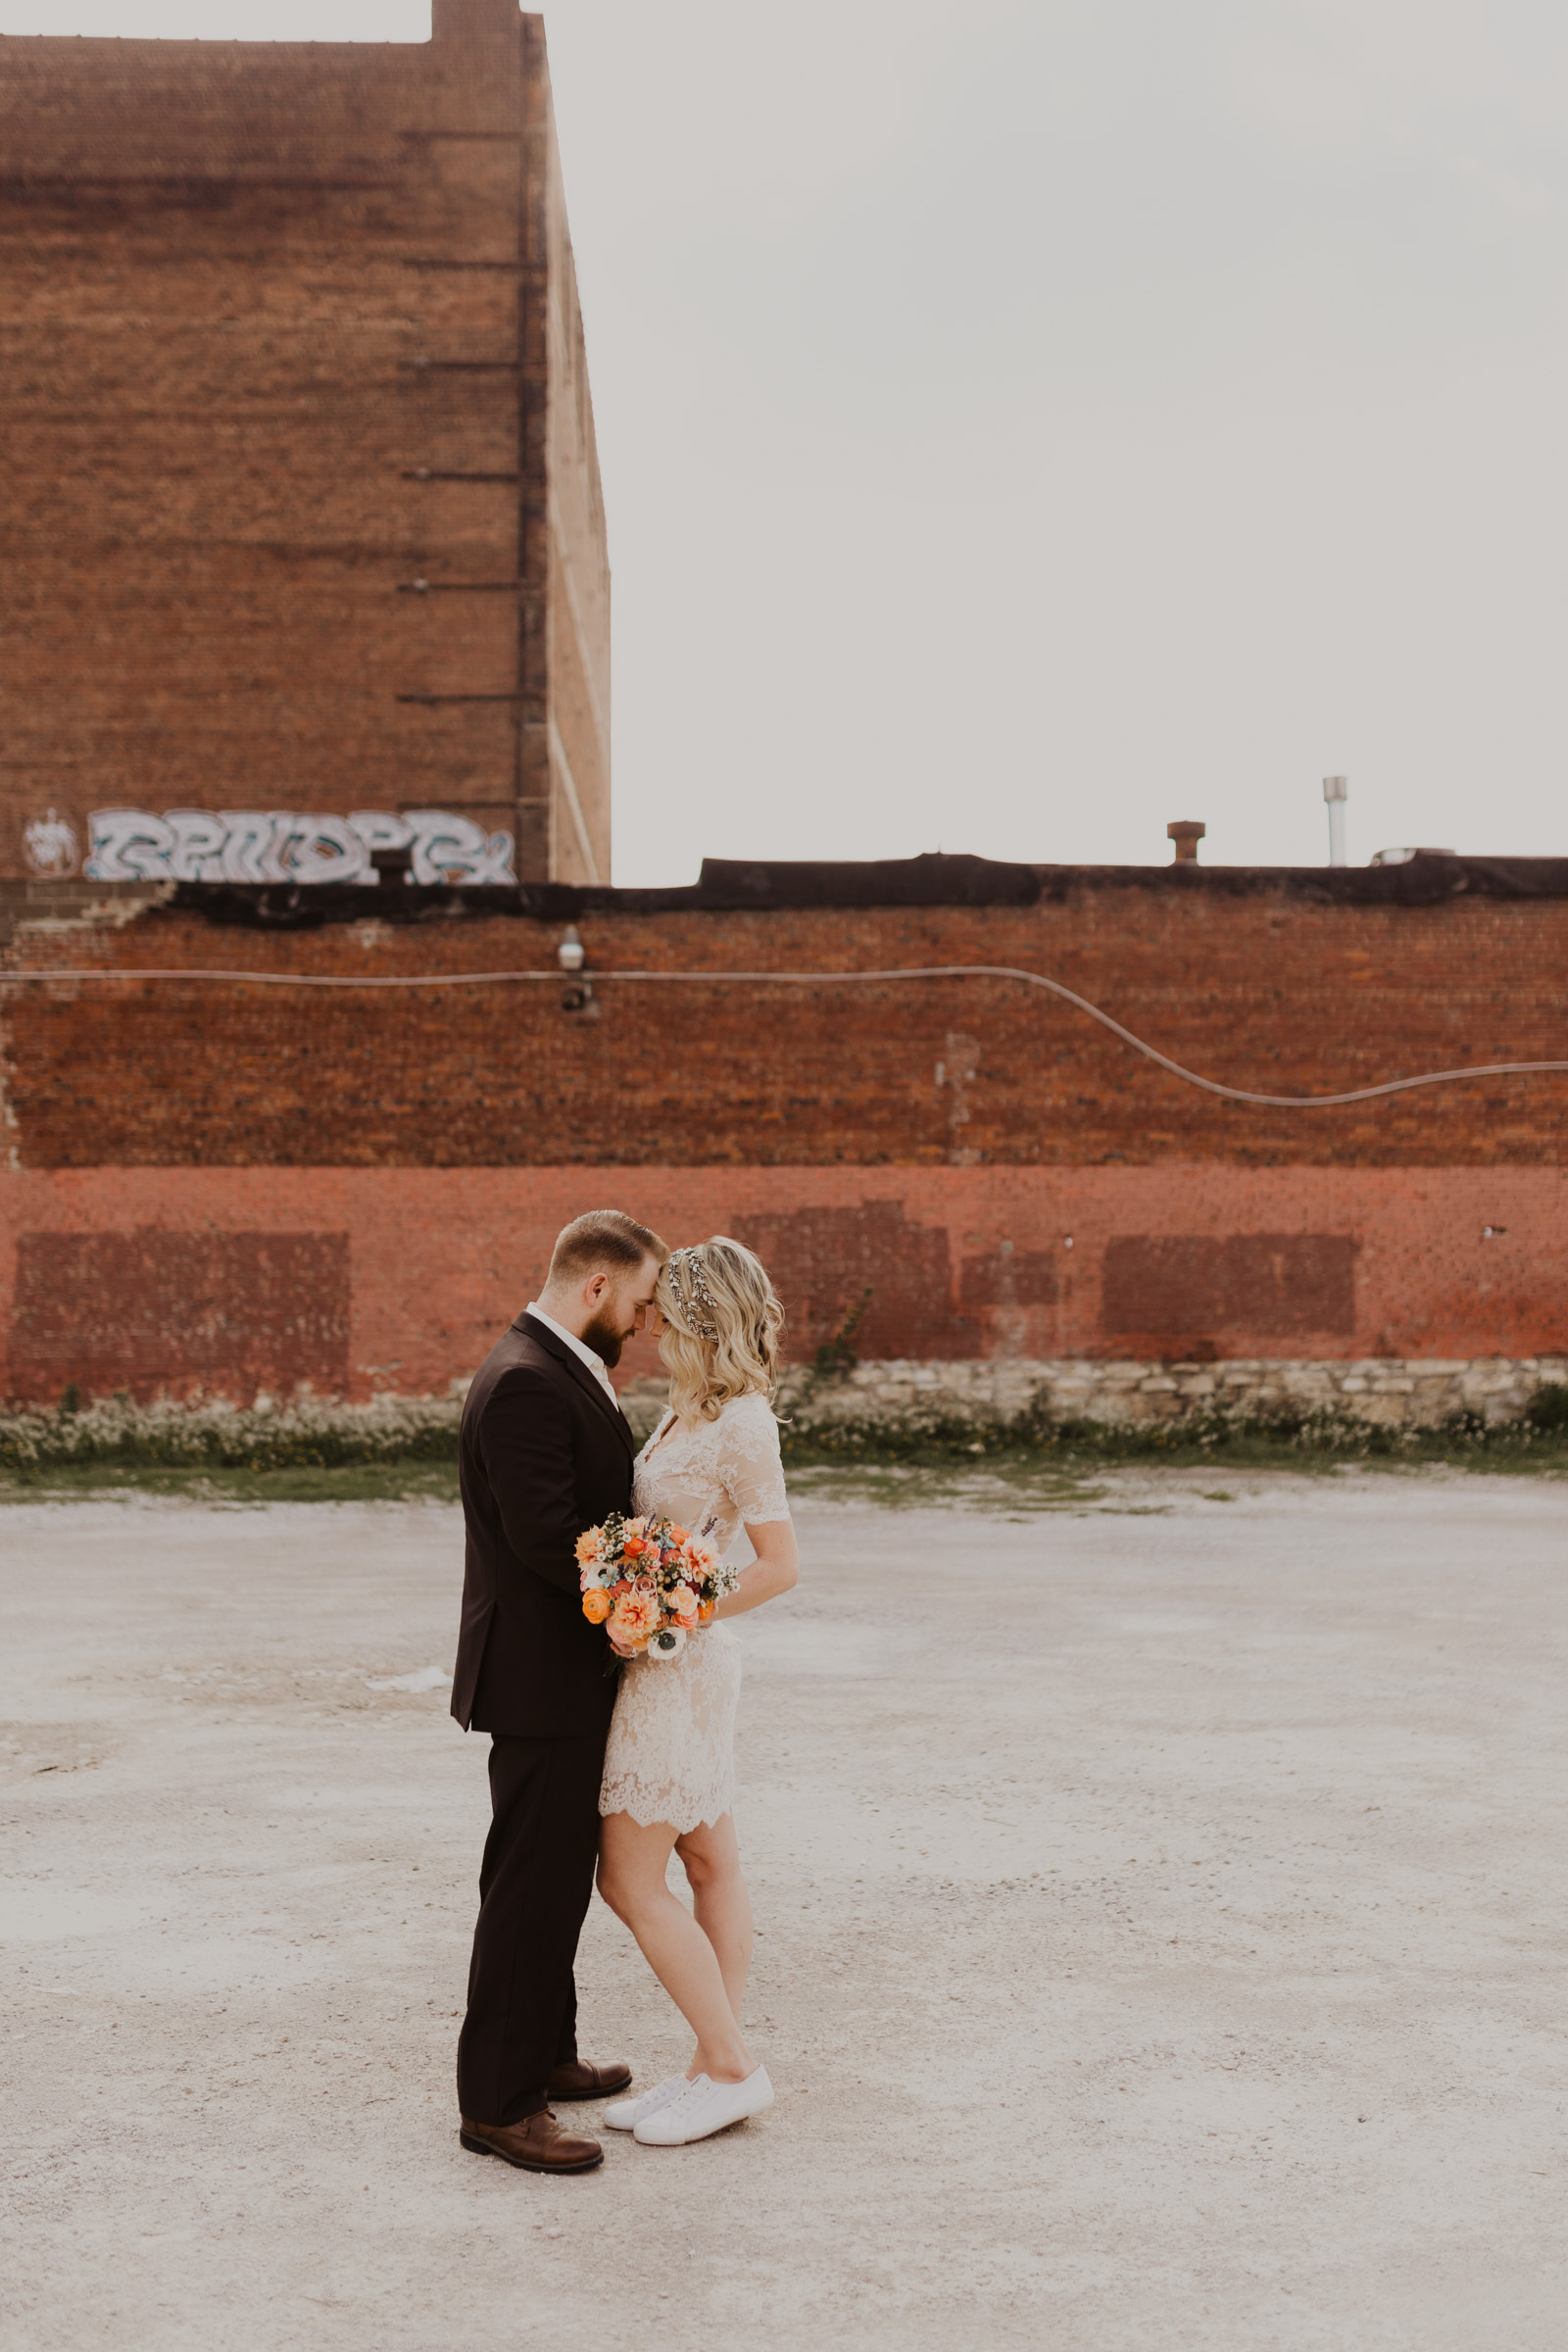 alyssa barletter photography styled shoot wedding inspiration kansas city west bottoms photographer motorcycle edgy intimate-37.jpg